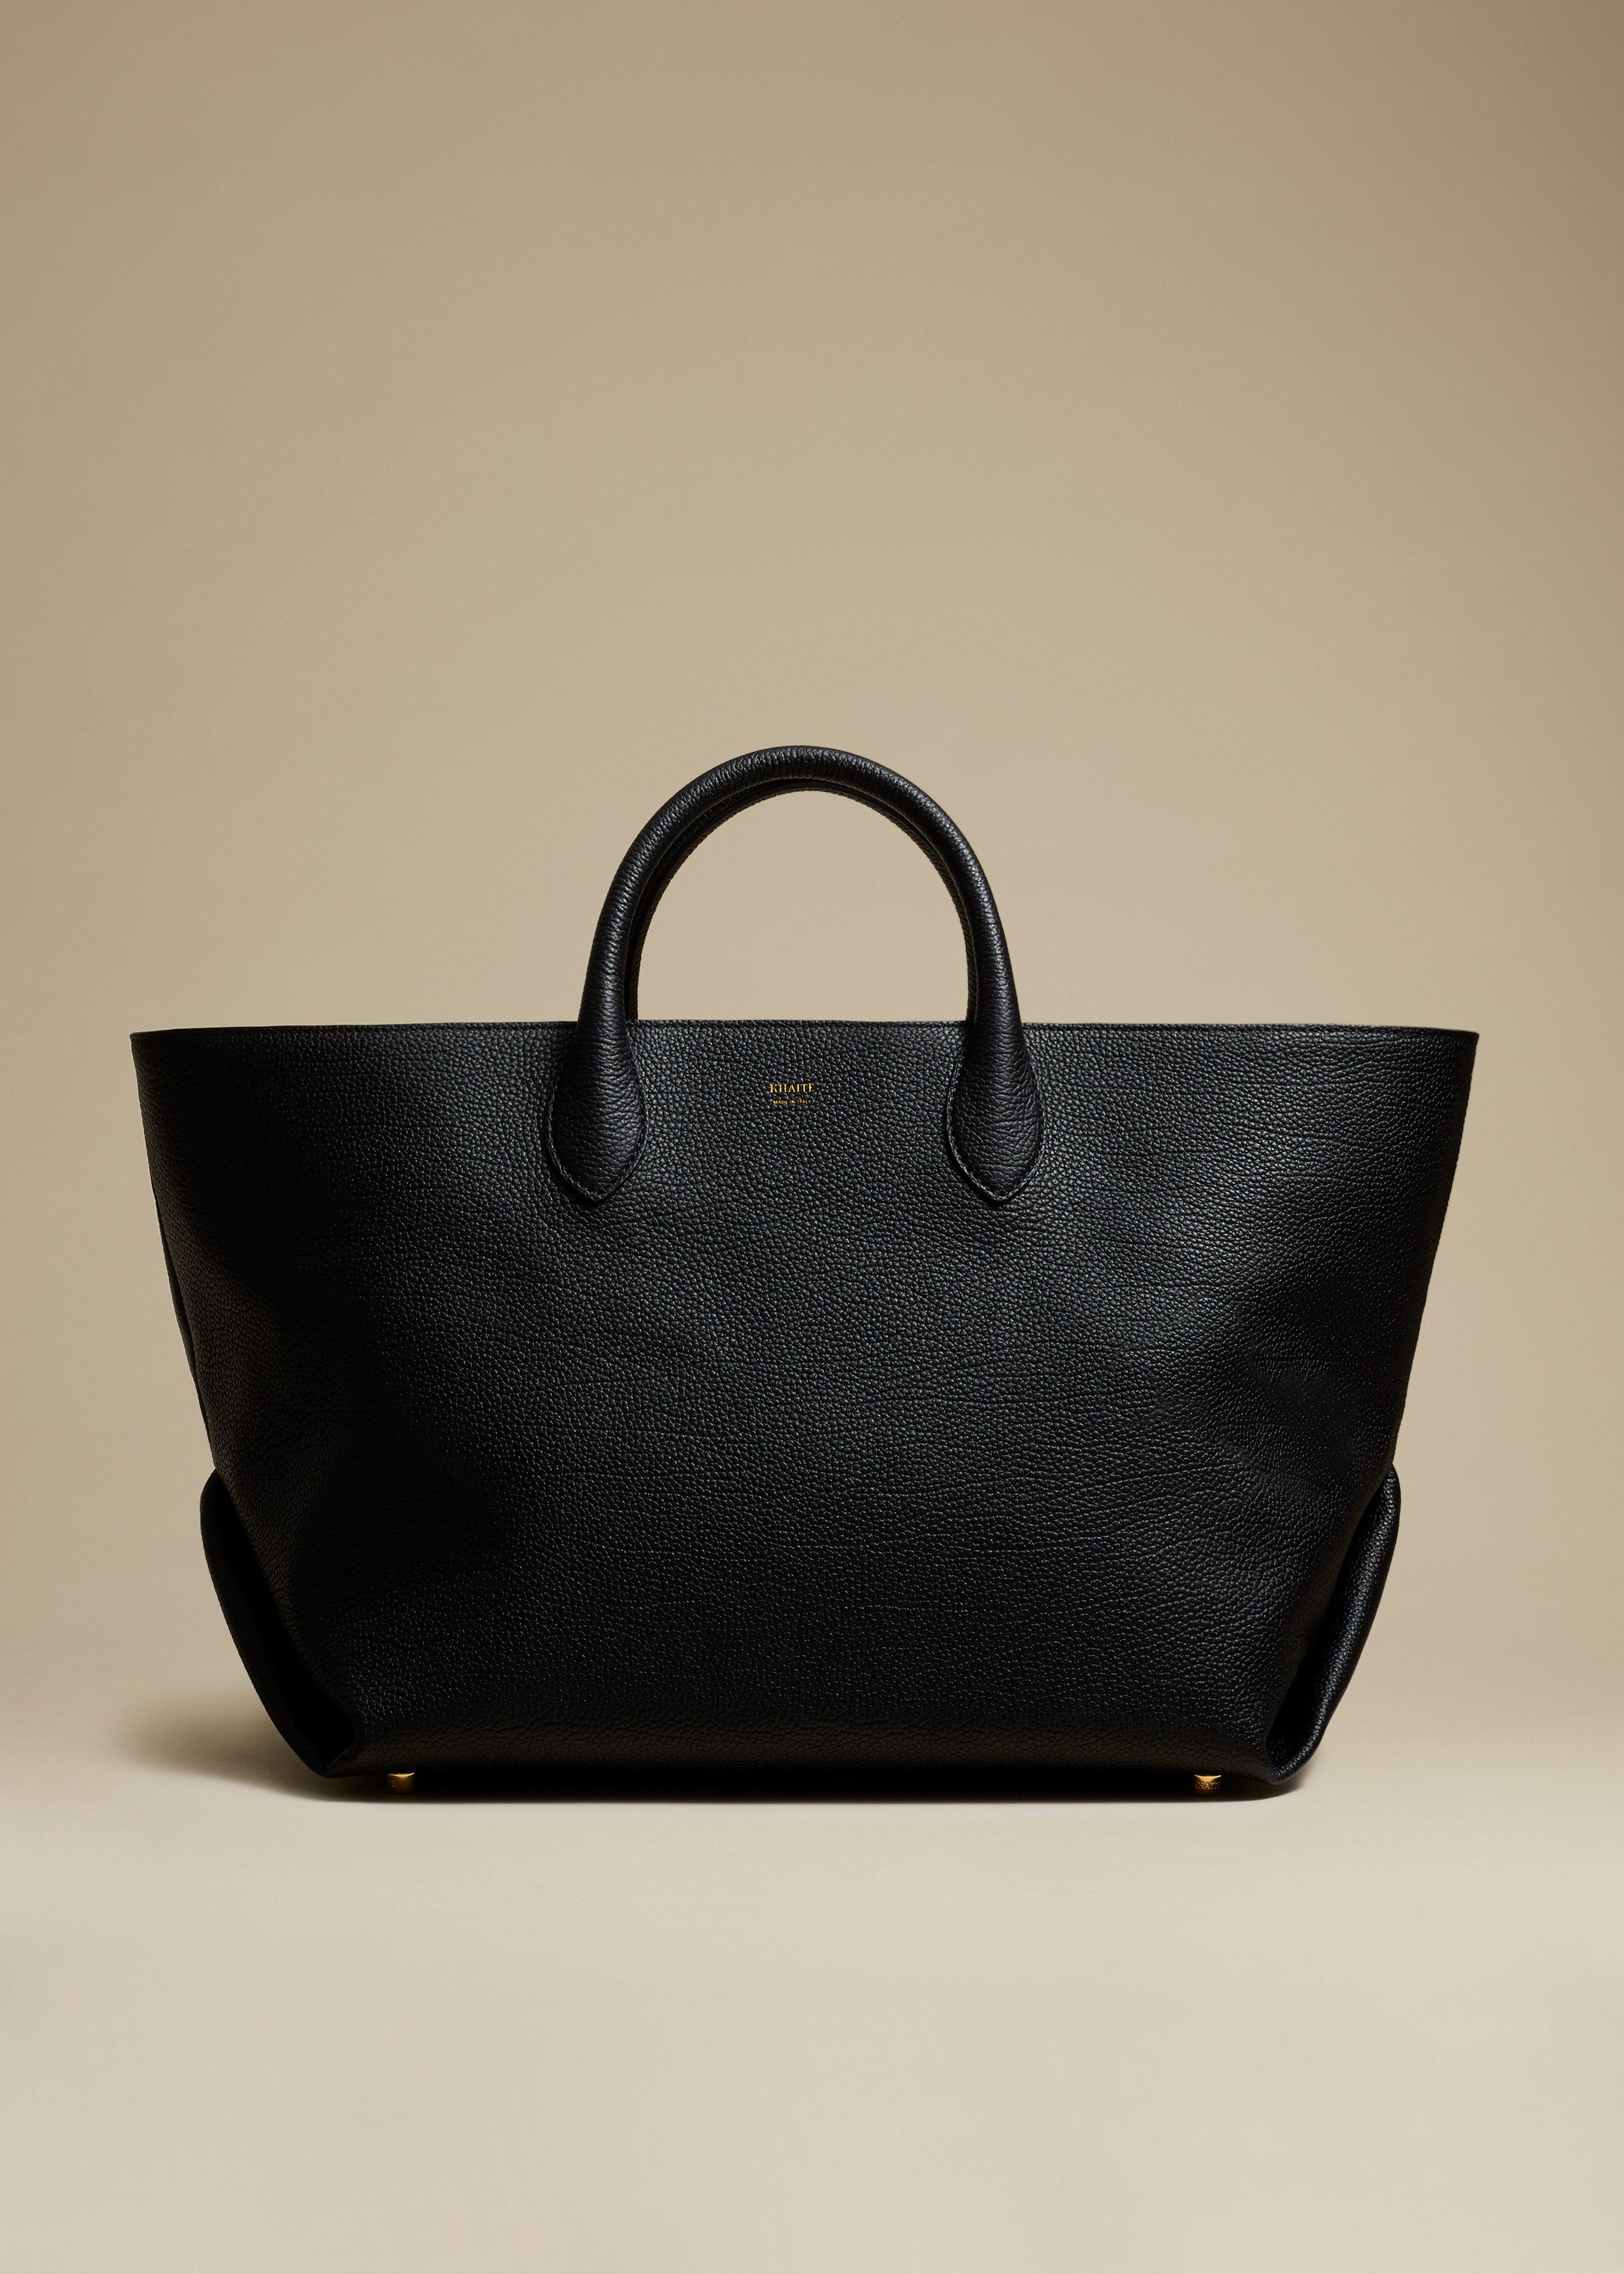 The Medium Amelia Tote in Black Grained Leather